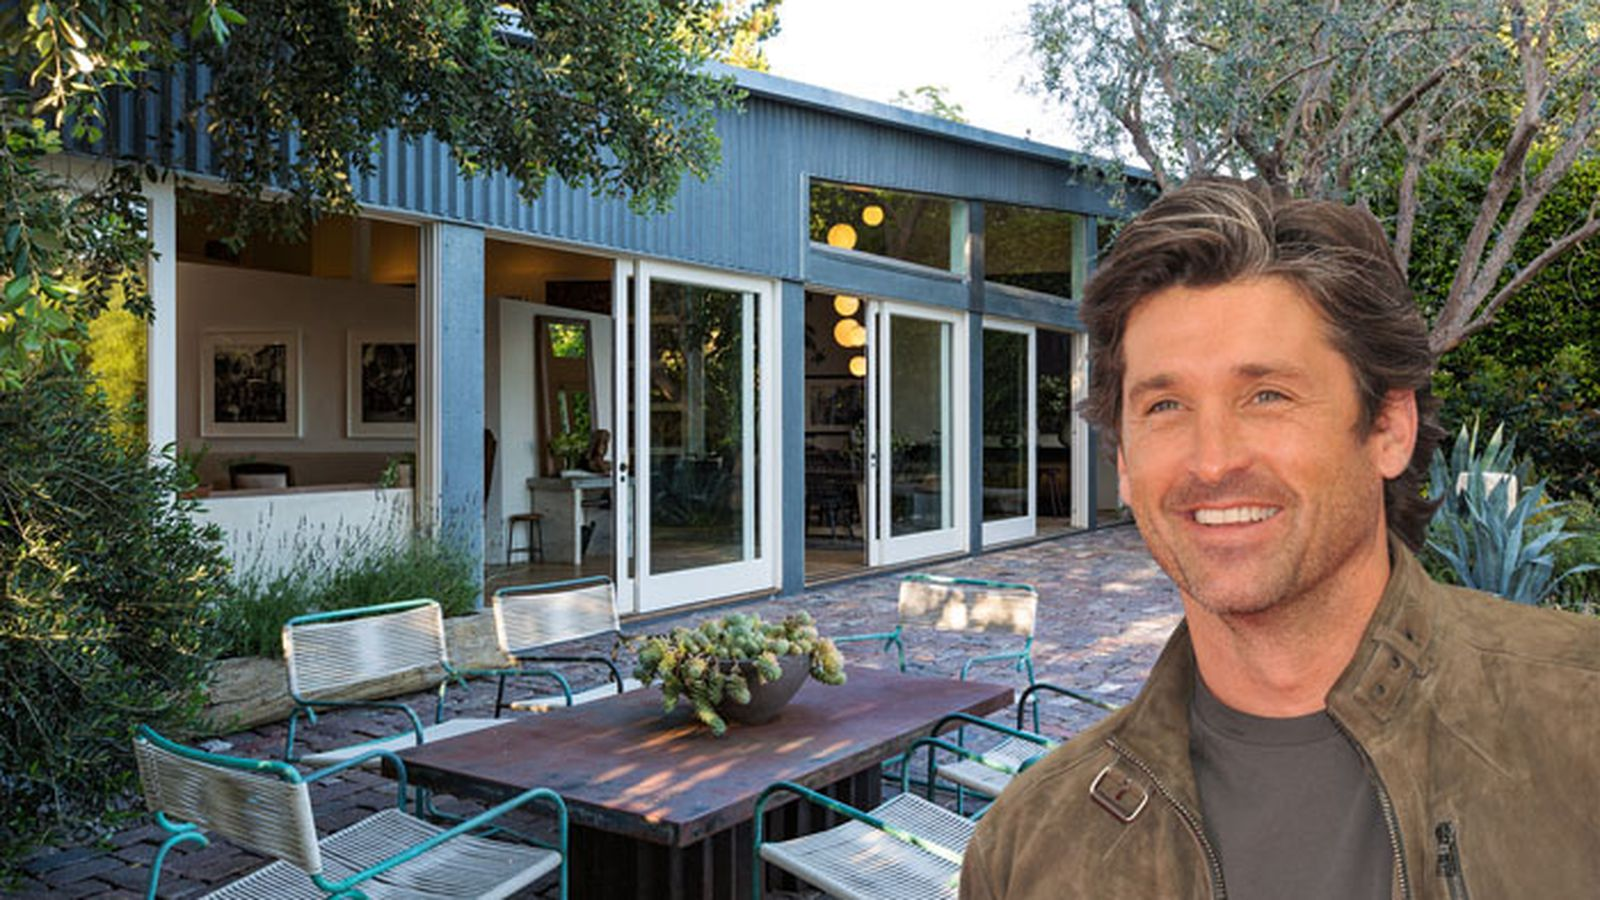 Patrick Dempsey Selling His Metal Clad Frank Gehry House